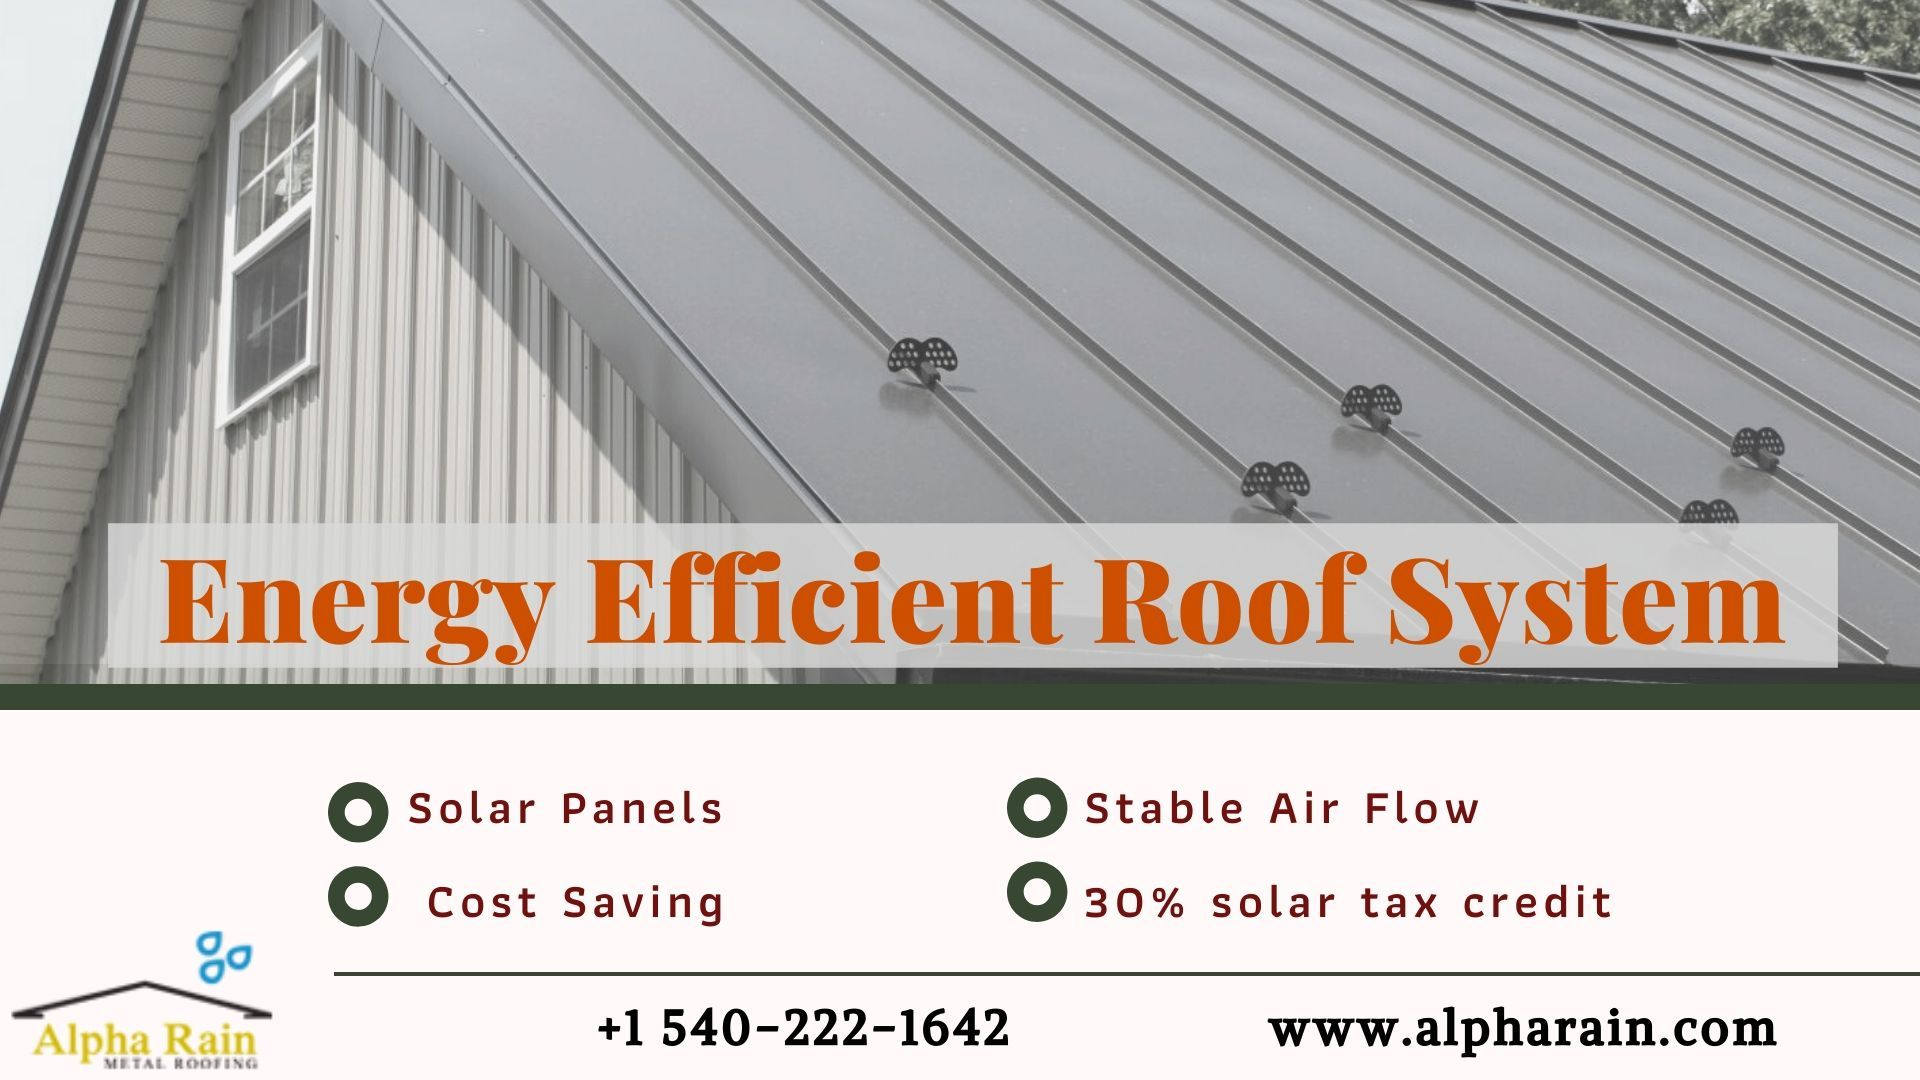 Virginia Metal Roof Specialists In 2020 Metal Roofing Systems Energy Efficient Roofing Metal Roof